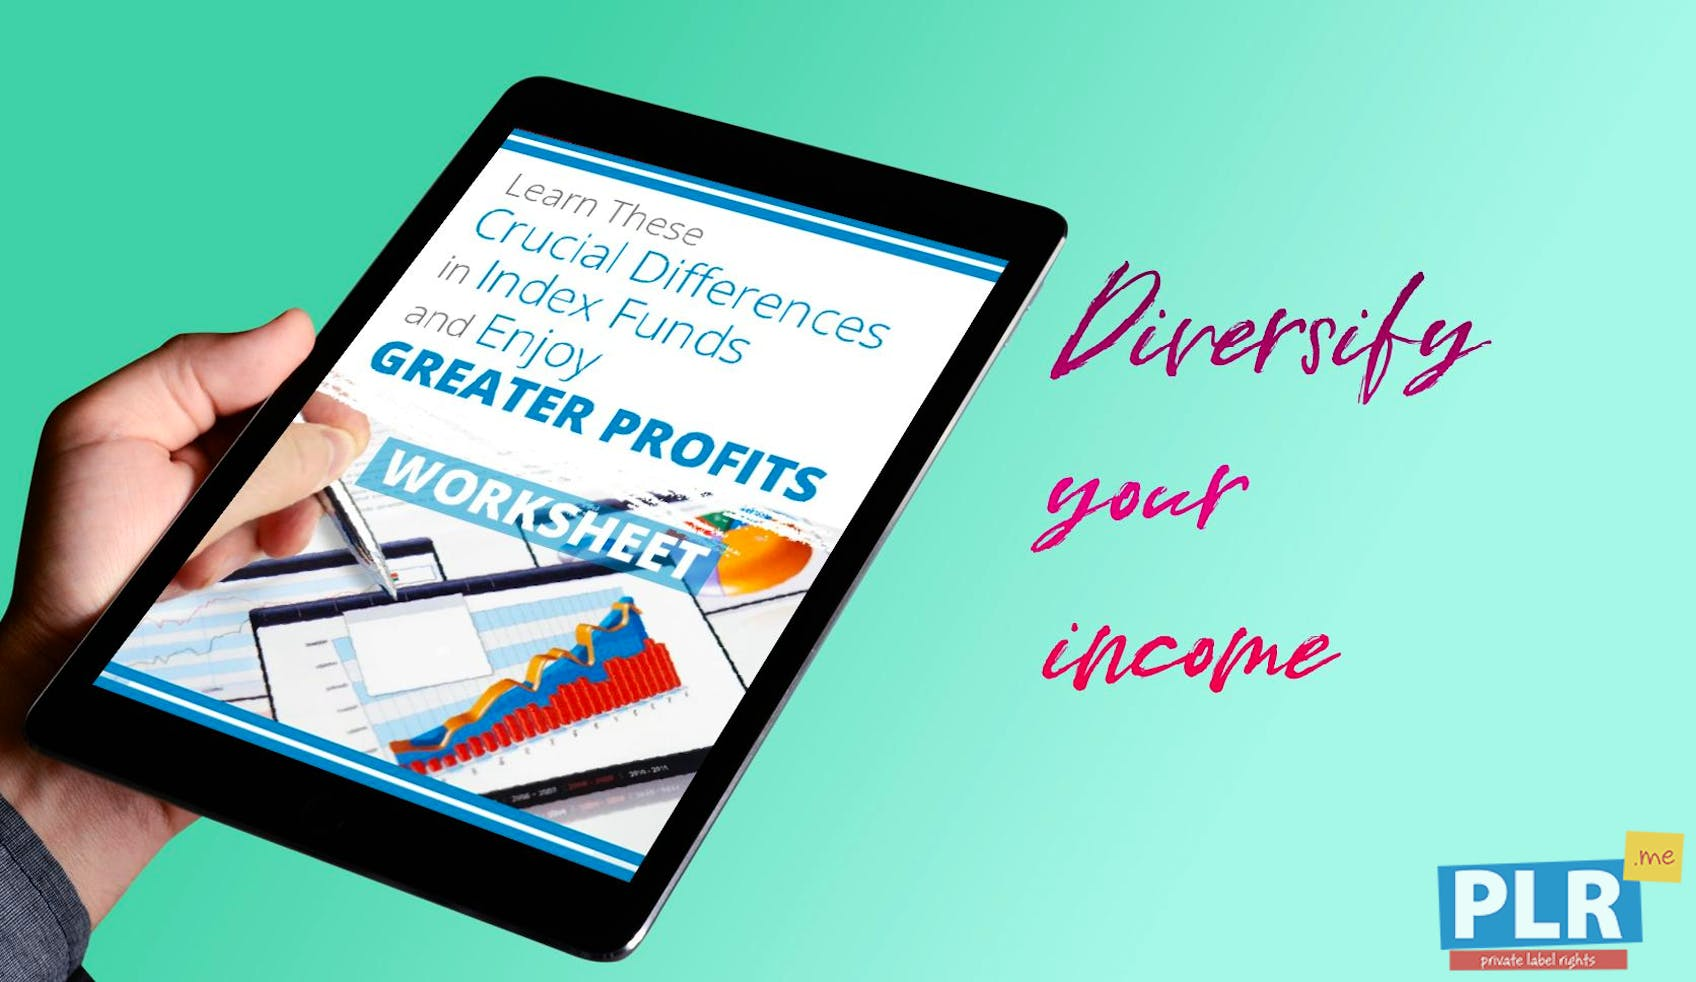 Learn These Crucial Differences In Index Funds And Enjoy Greater Profits Worksheet